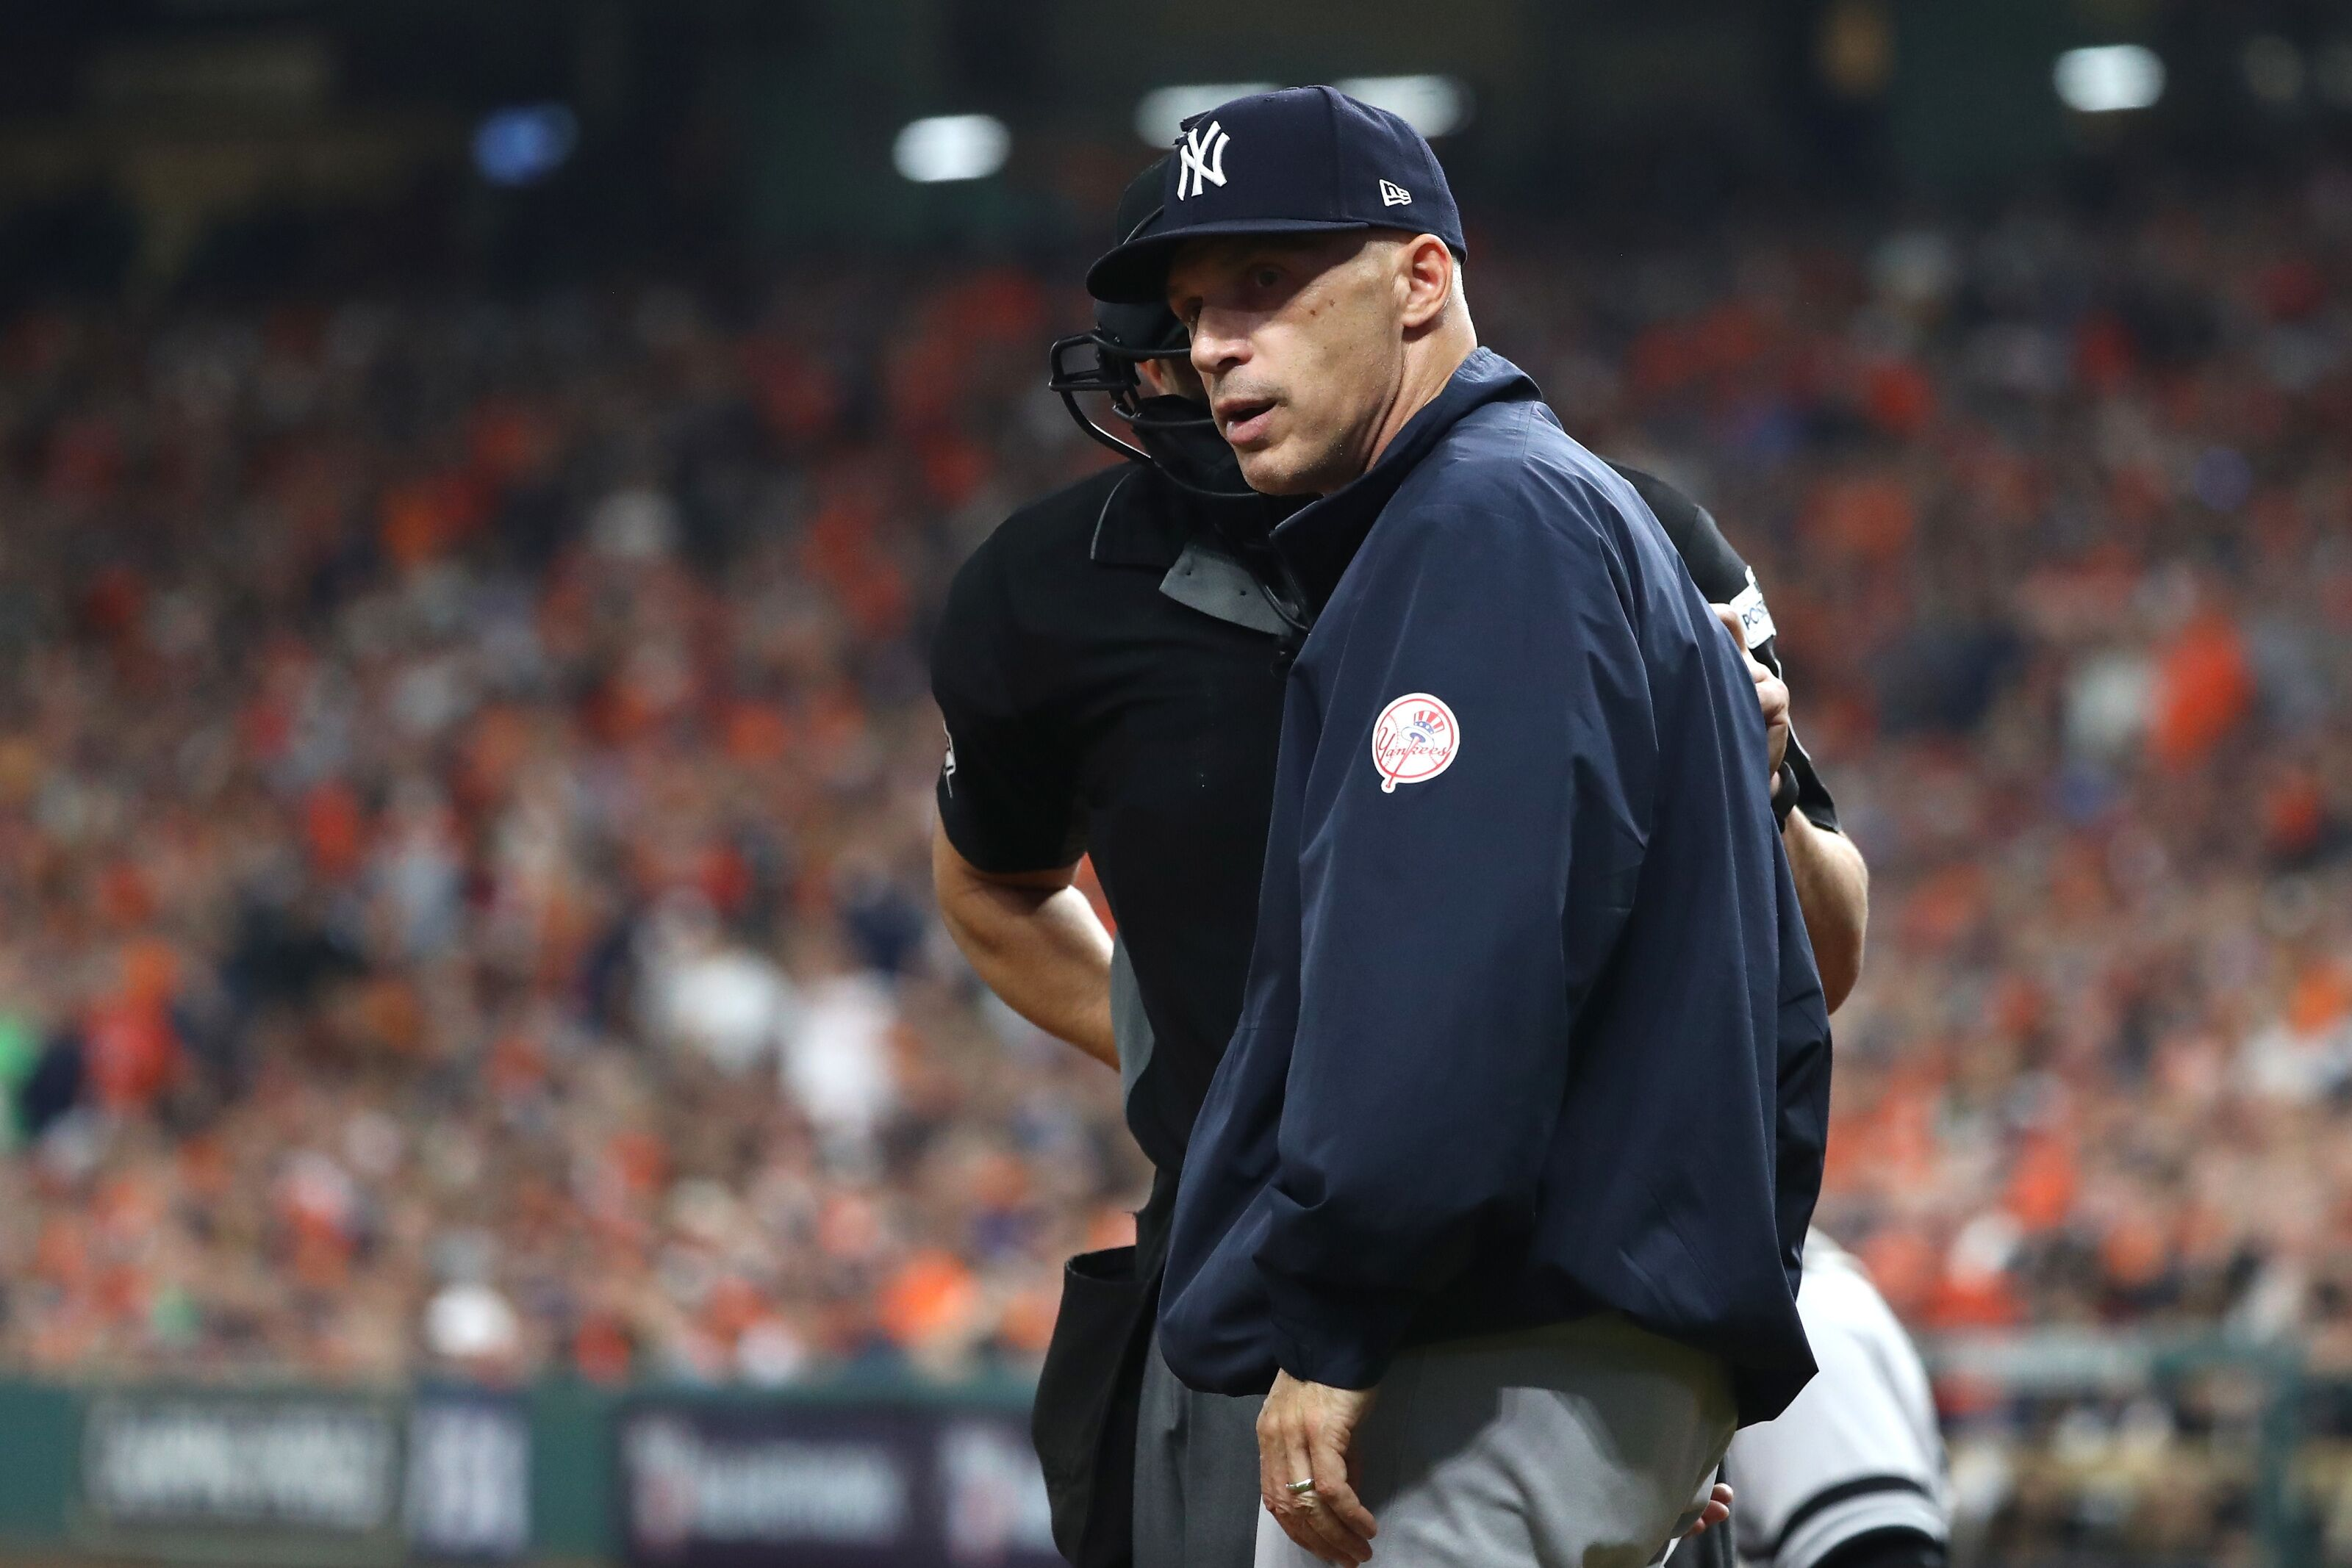 Assessing Joe Girardi as possible candidate for White Sox Manager